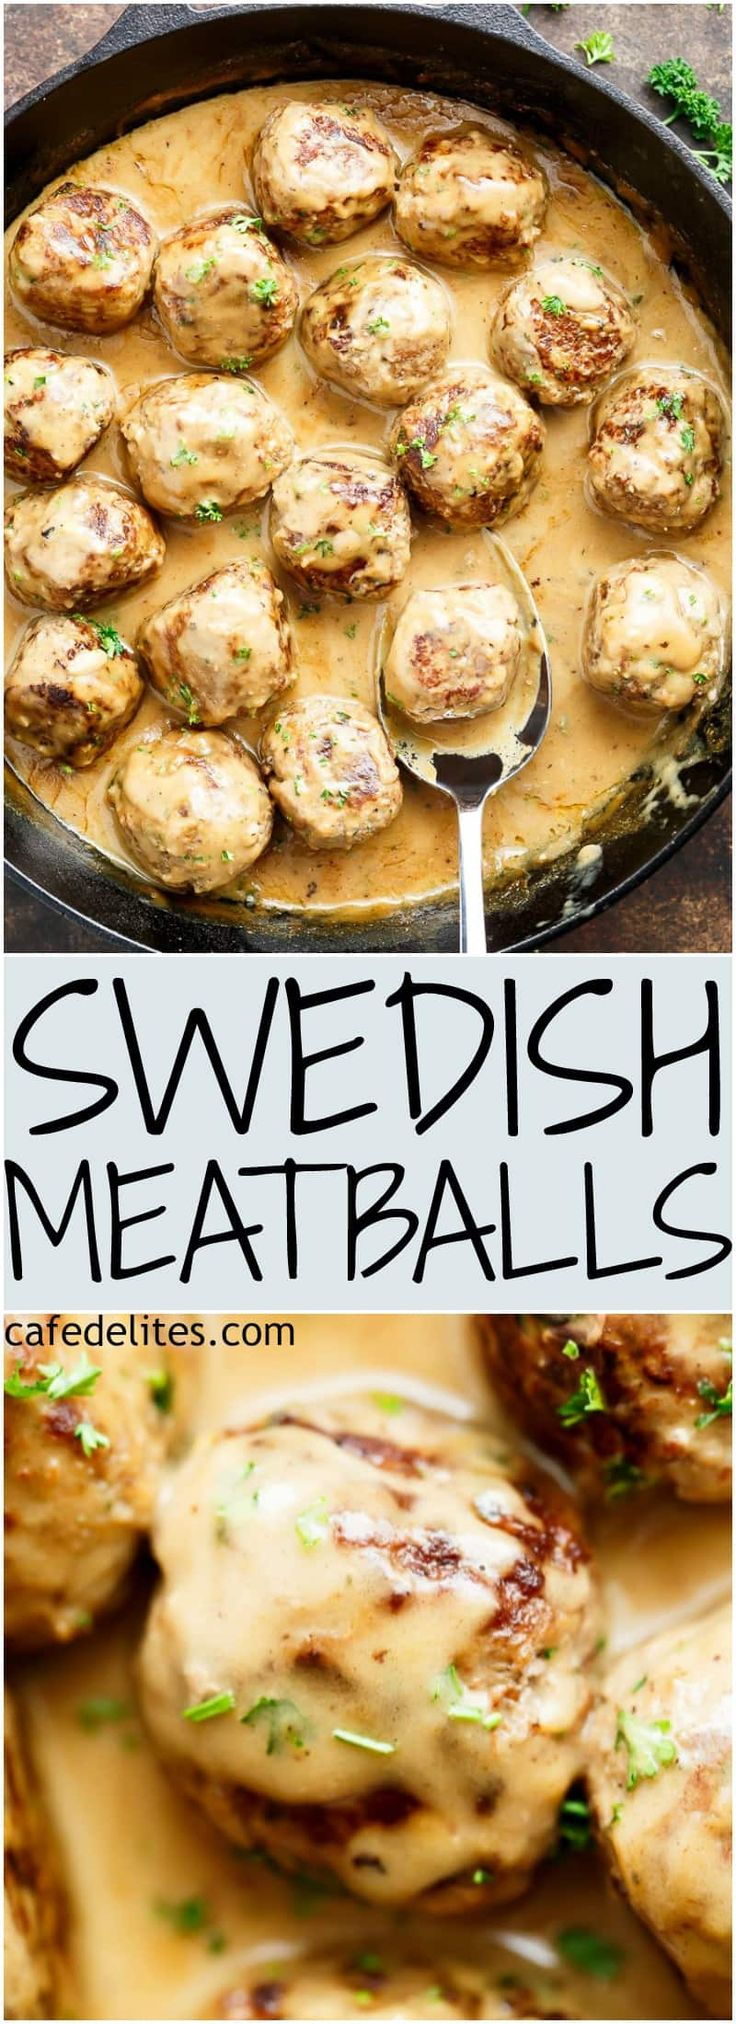 This Swedish Meatballs recipe has been passed down from a Swedish grandmother! The best Swedish meatballs recipe you'll ever try!